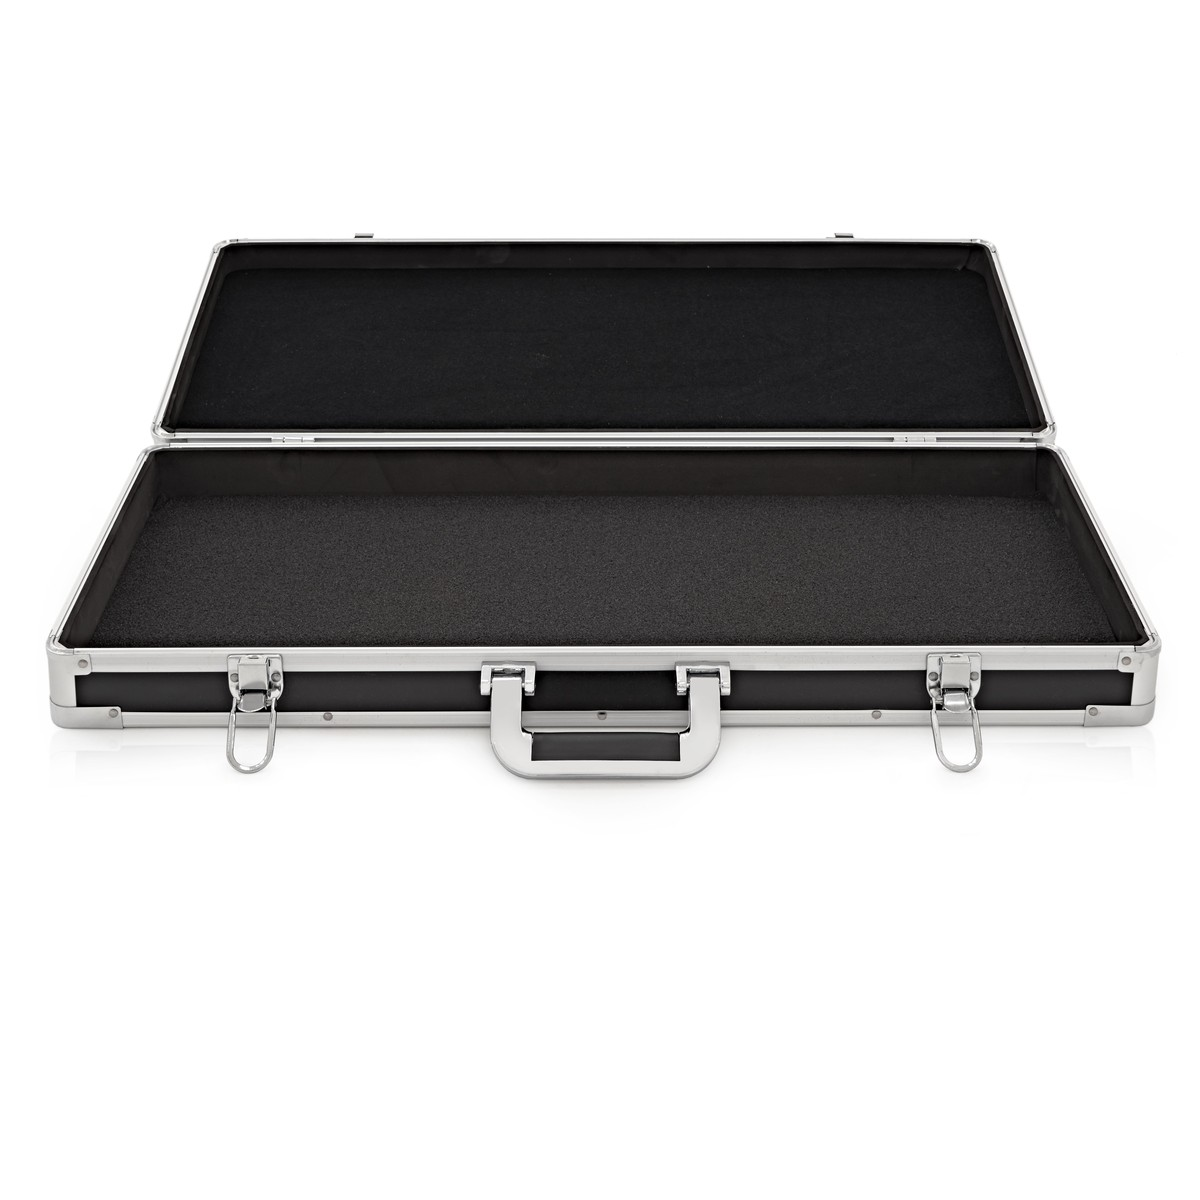 guitar pedal board flight case by gear4music large at gear4music. Black Bedroom Furniture Sets. Home Design Ideas